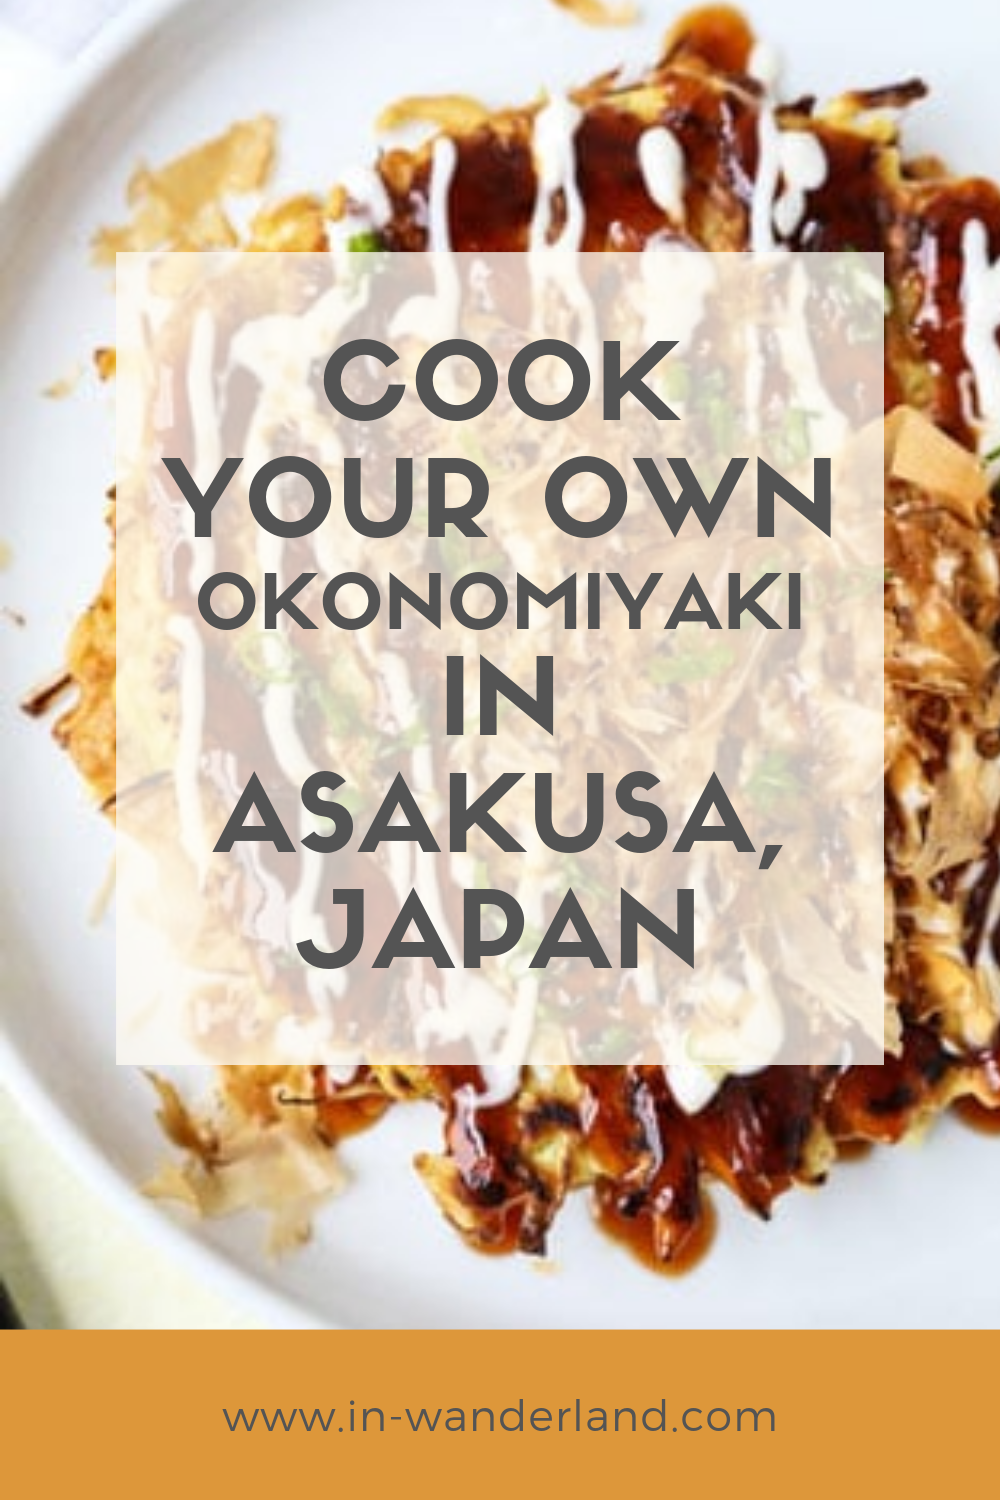 A Cook Your Own Okonomiyaki Restaurant in Asakusa, Japan